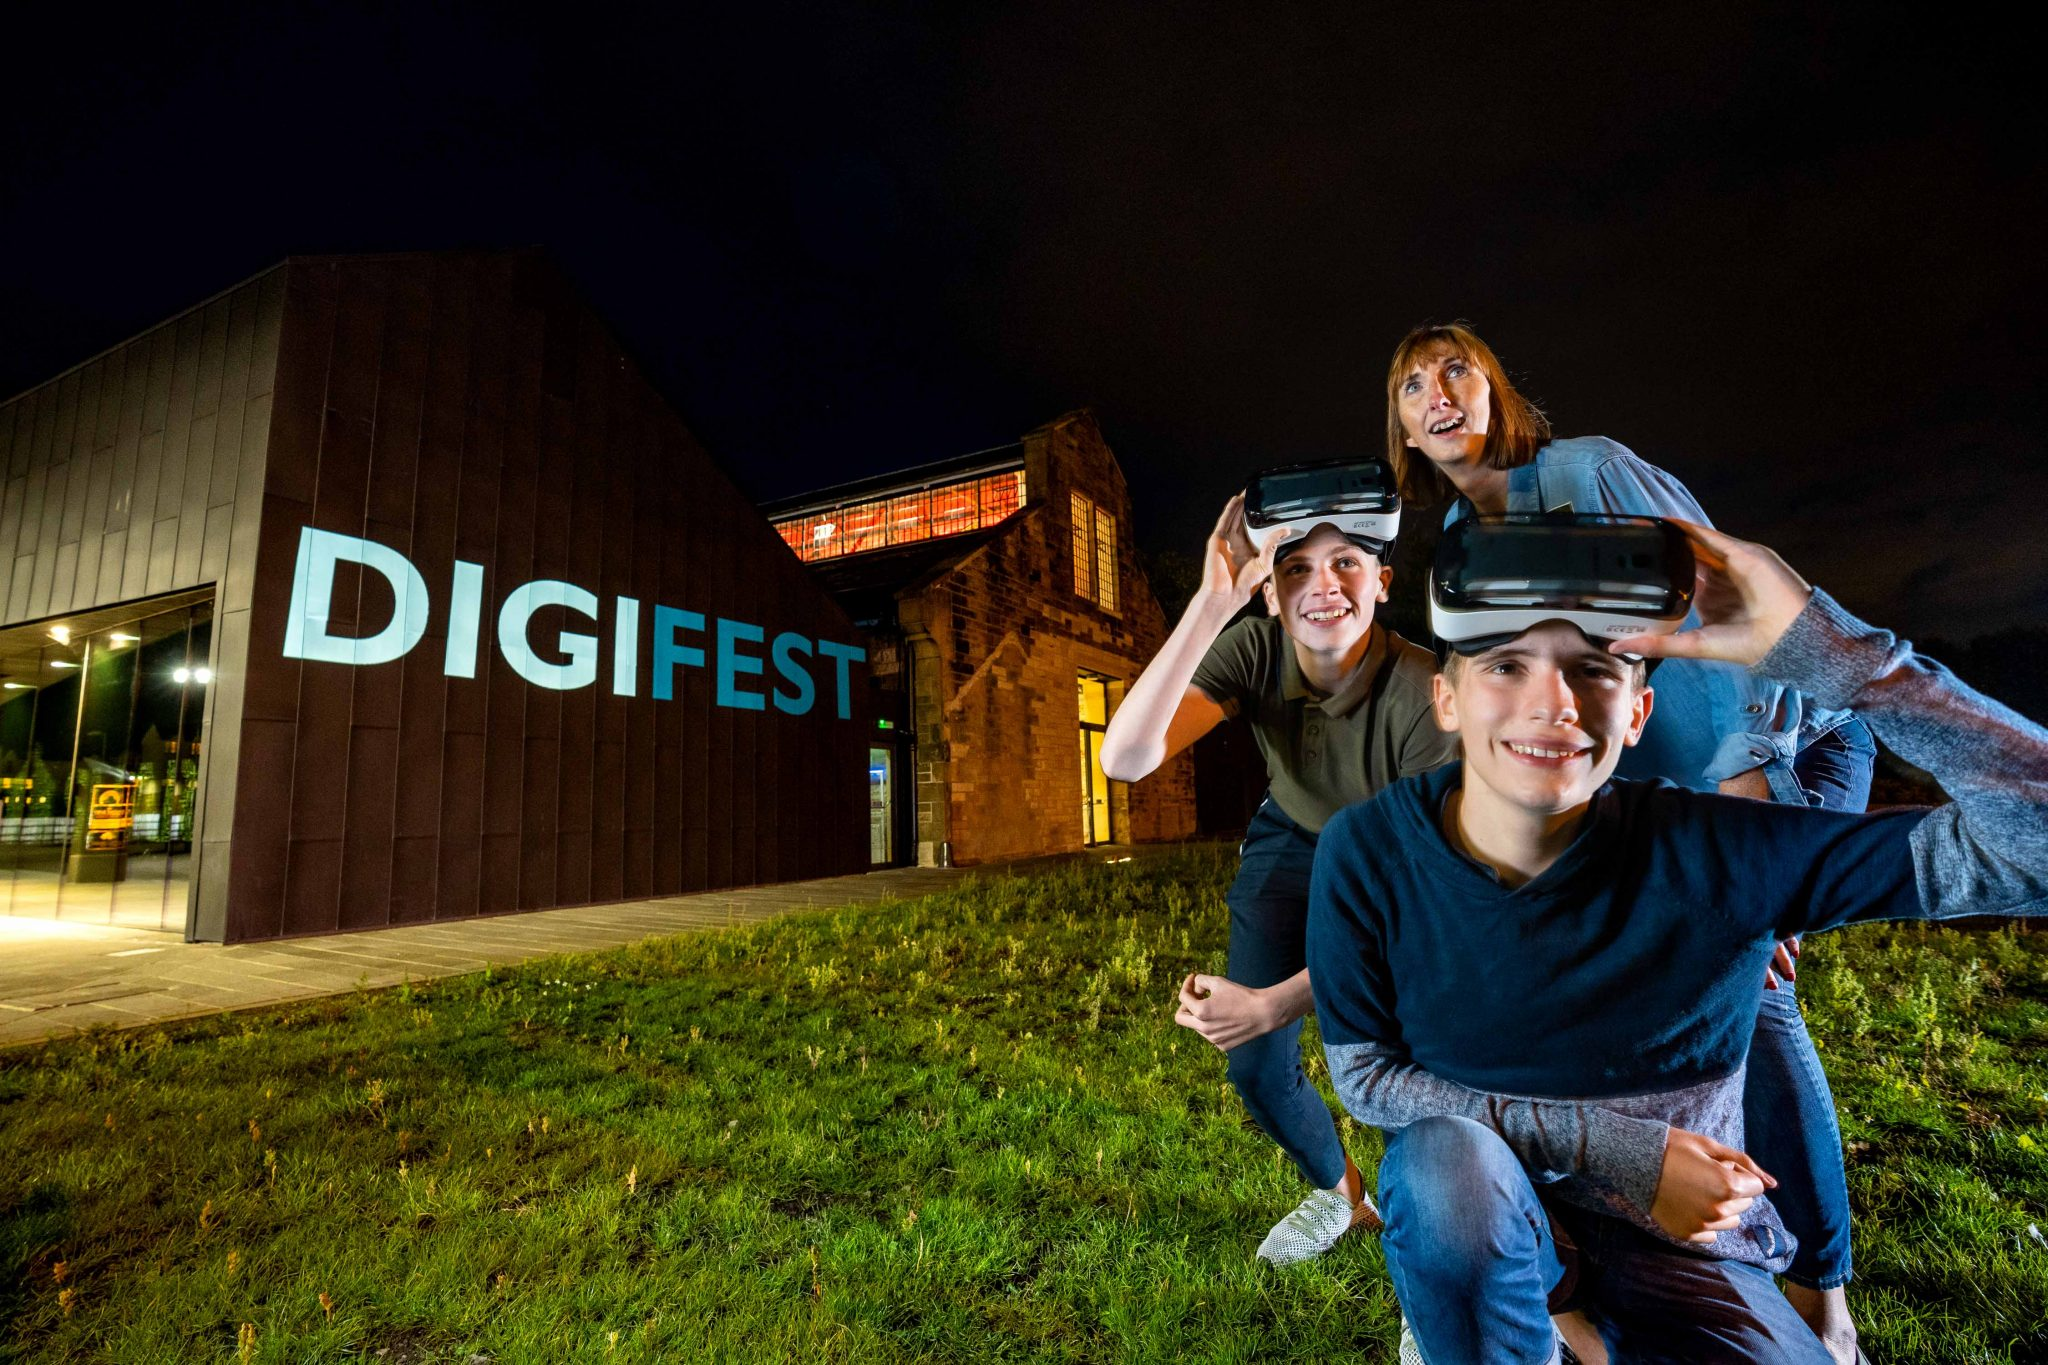 The DigiFest promotional flyer. Photo via The Engine Shed.